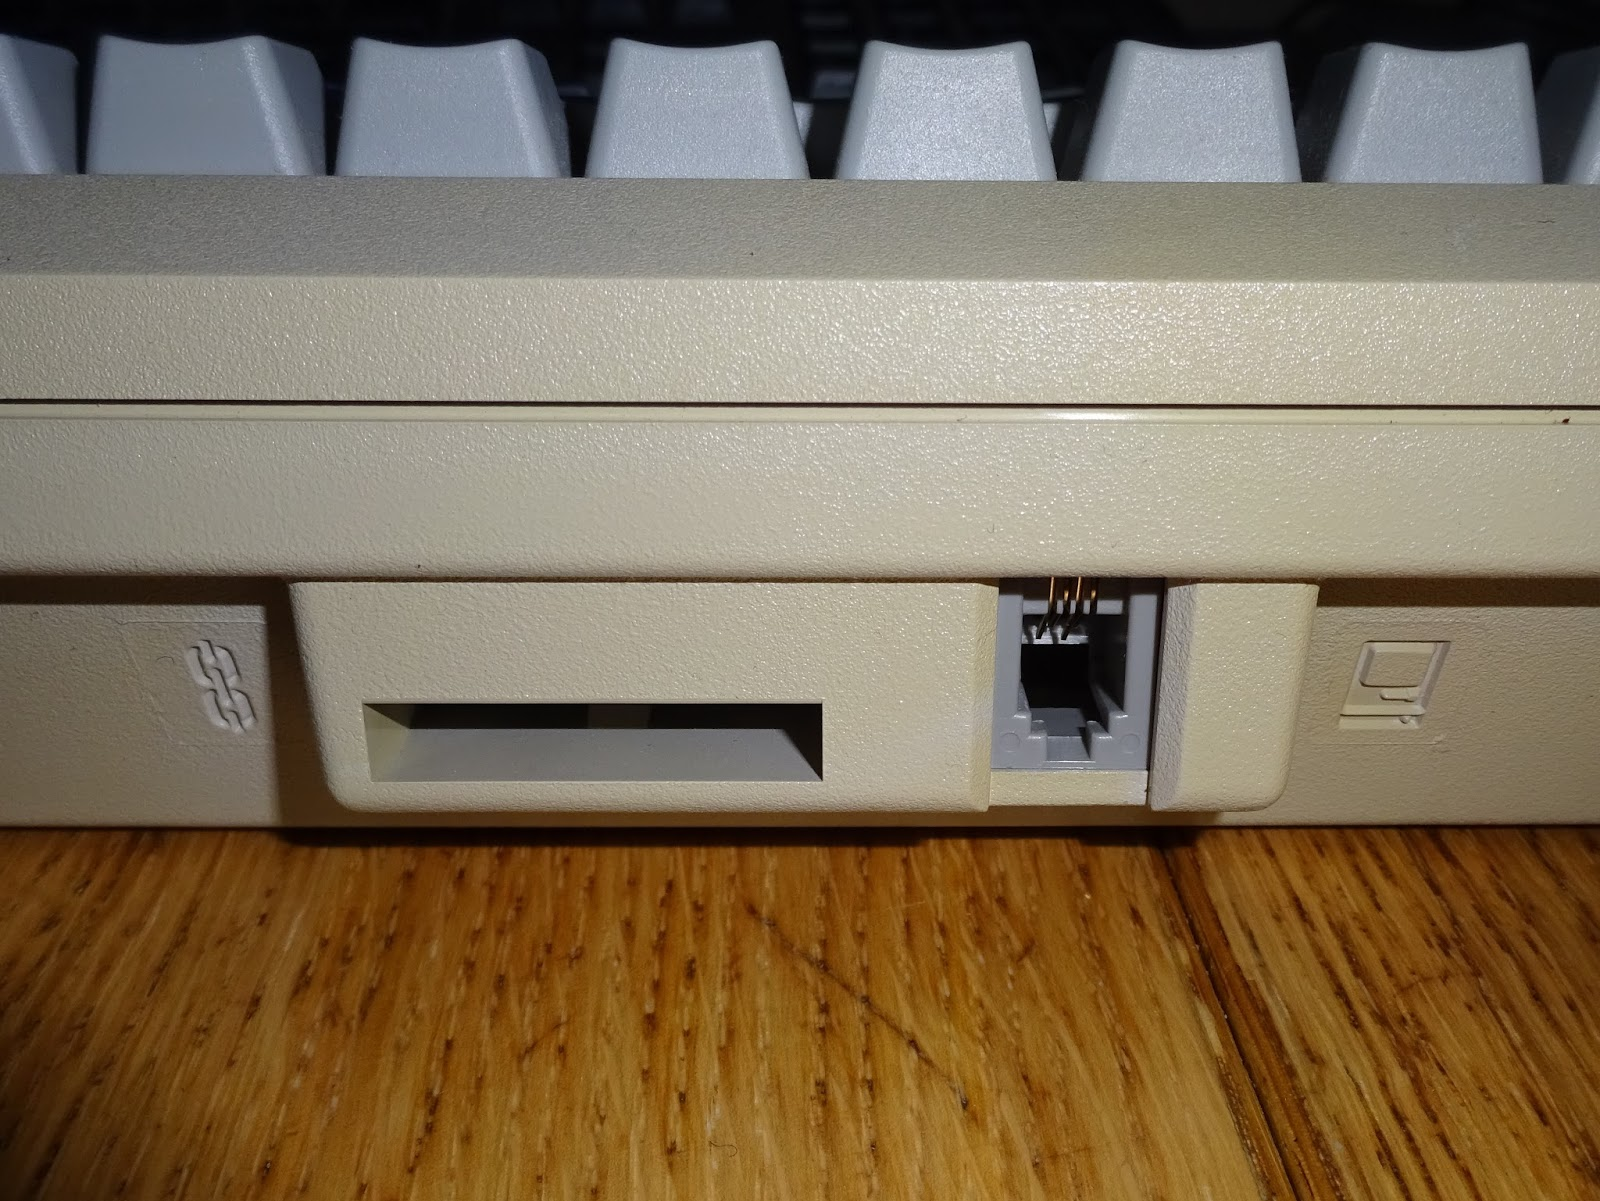 Tynemouth Software Apple Macintosh Usb Keyboard And Mouse Conversion Converter To Ps2 As With Previous Conversions Like The Recent Atari St